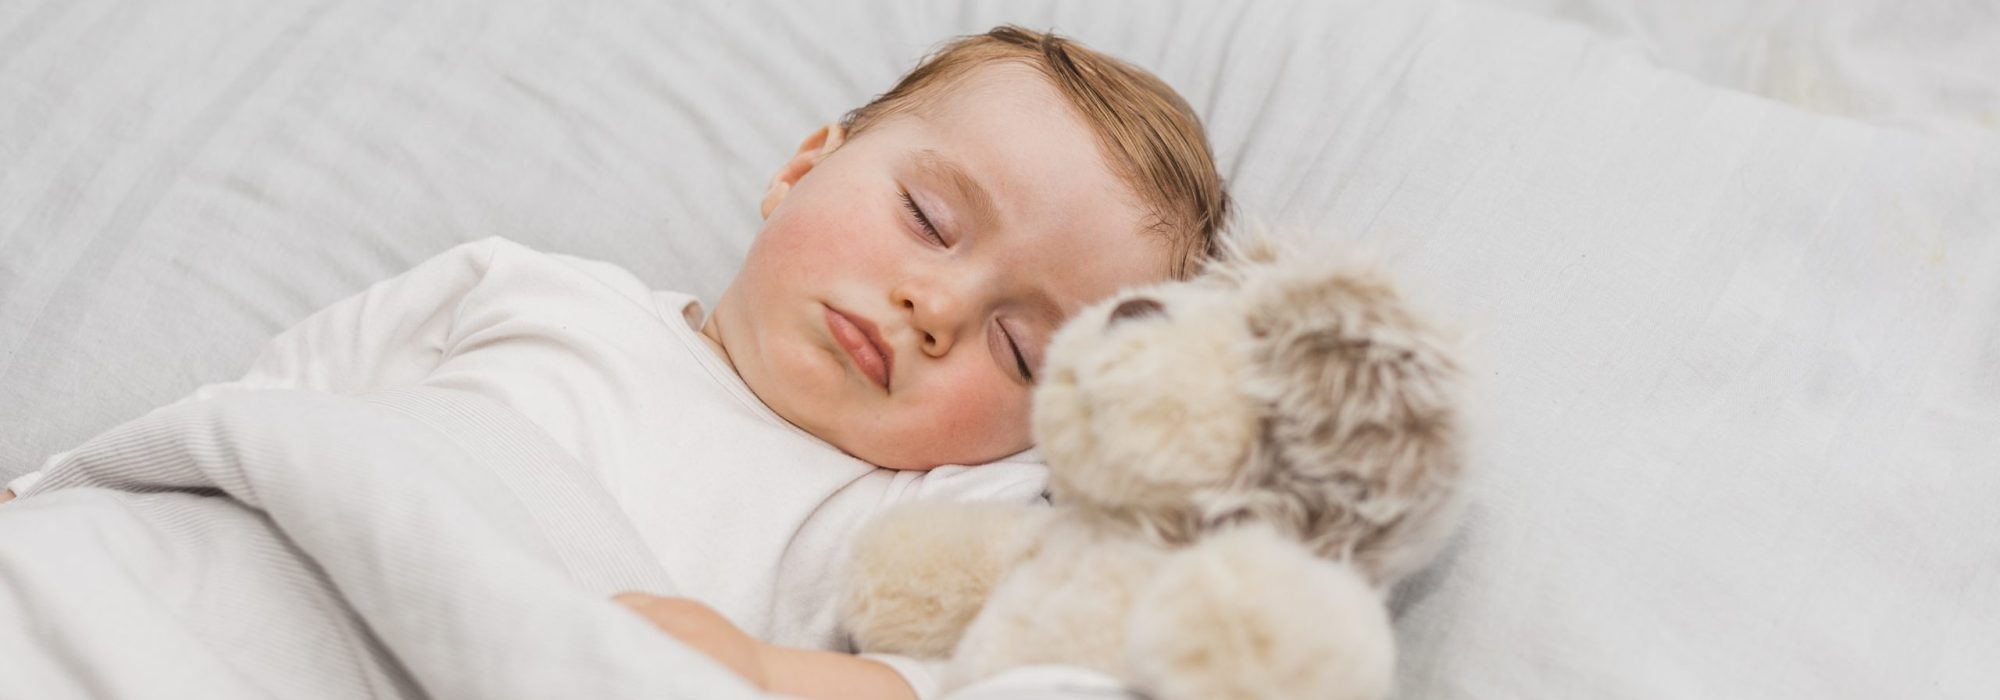 5 WAYS TO GET YOUR TODDLER TO SLEEP